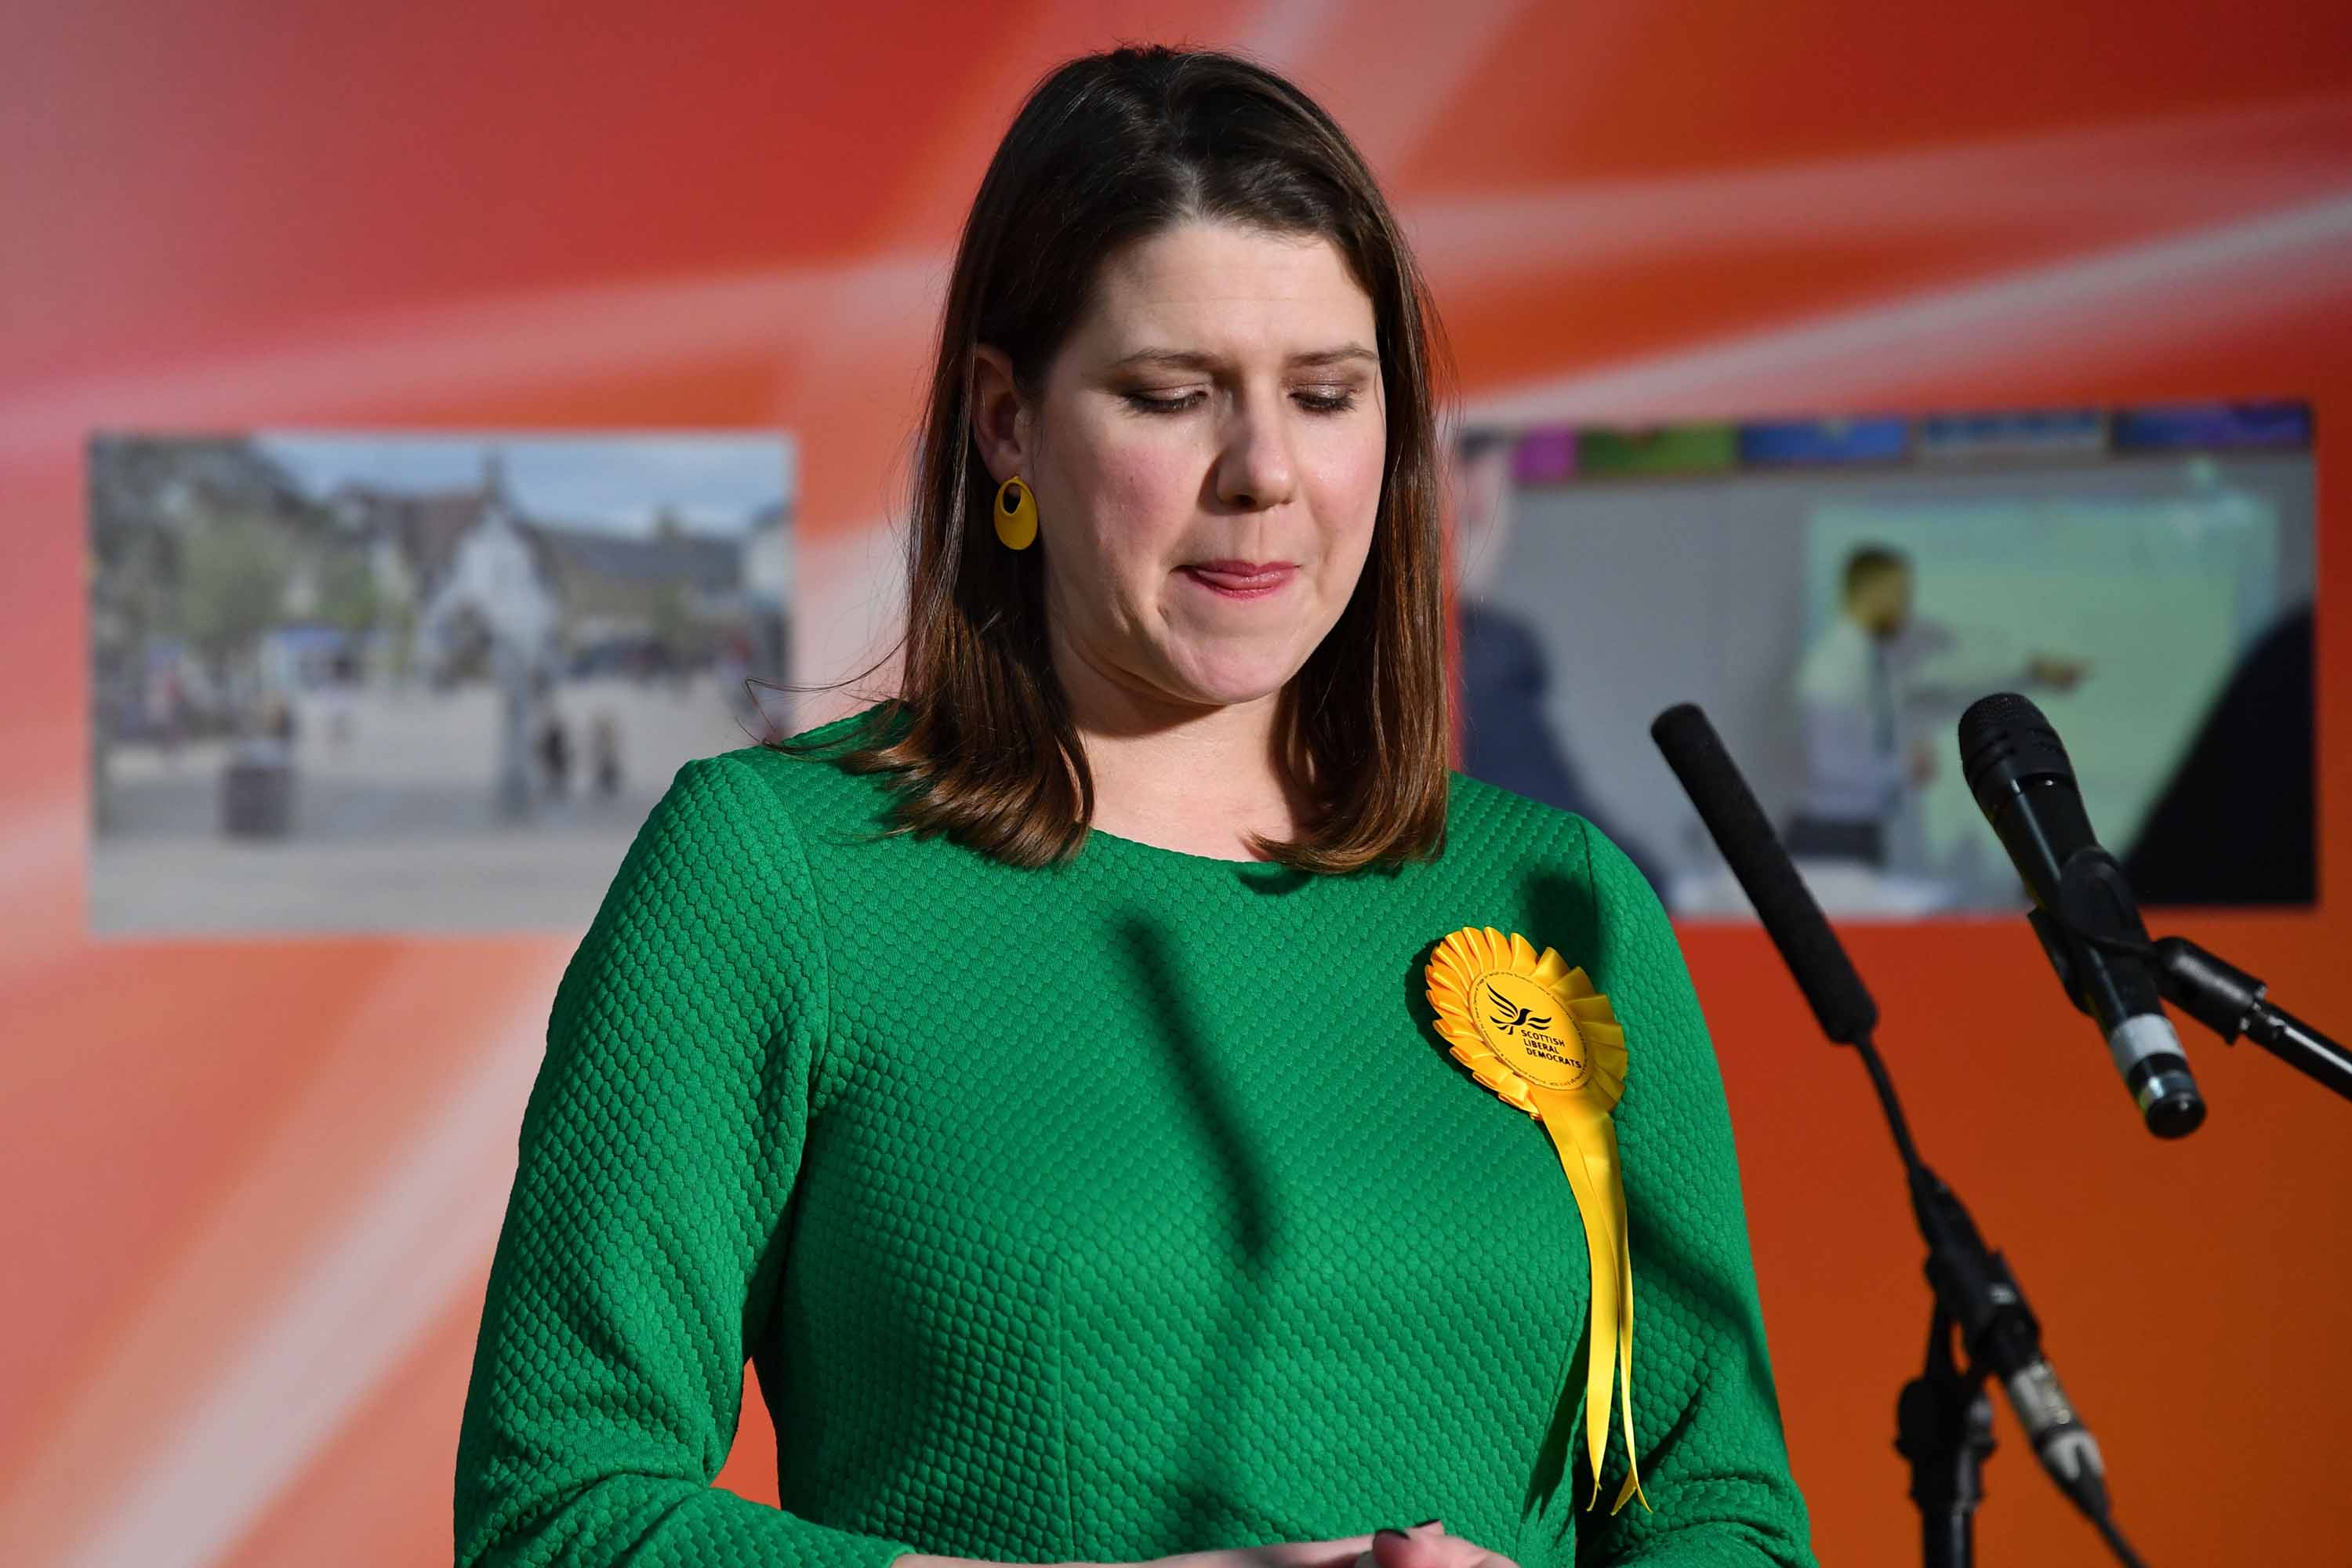 Liberal Democrat leader Jo Swinson reacts as she speaks on stage after losing her seat in Bishopbriggs, north of Glasgow, on December 13. Photo: Paul Ellis/AFP via Getty Images